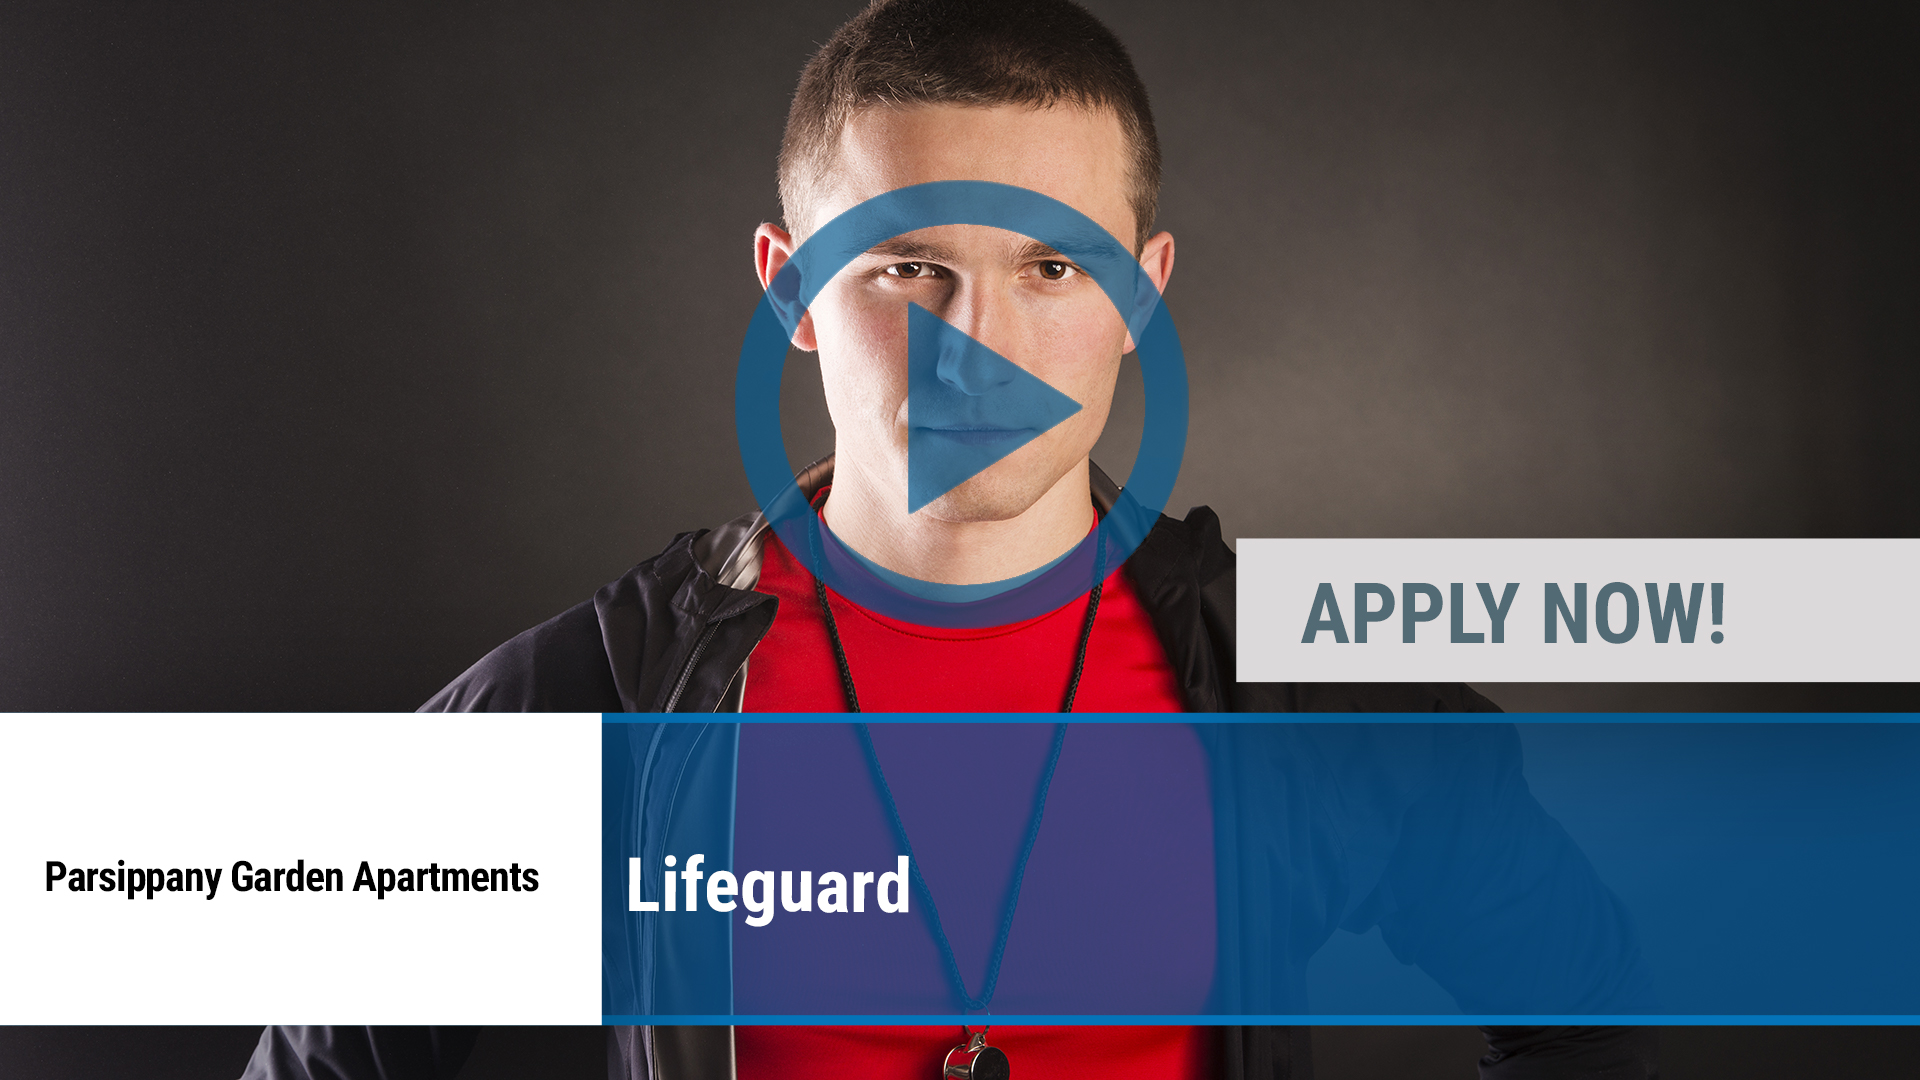 Watch our careers video for available job opening Lifeguard in Parsippany, NY